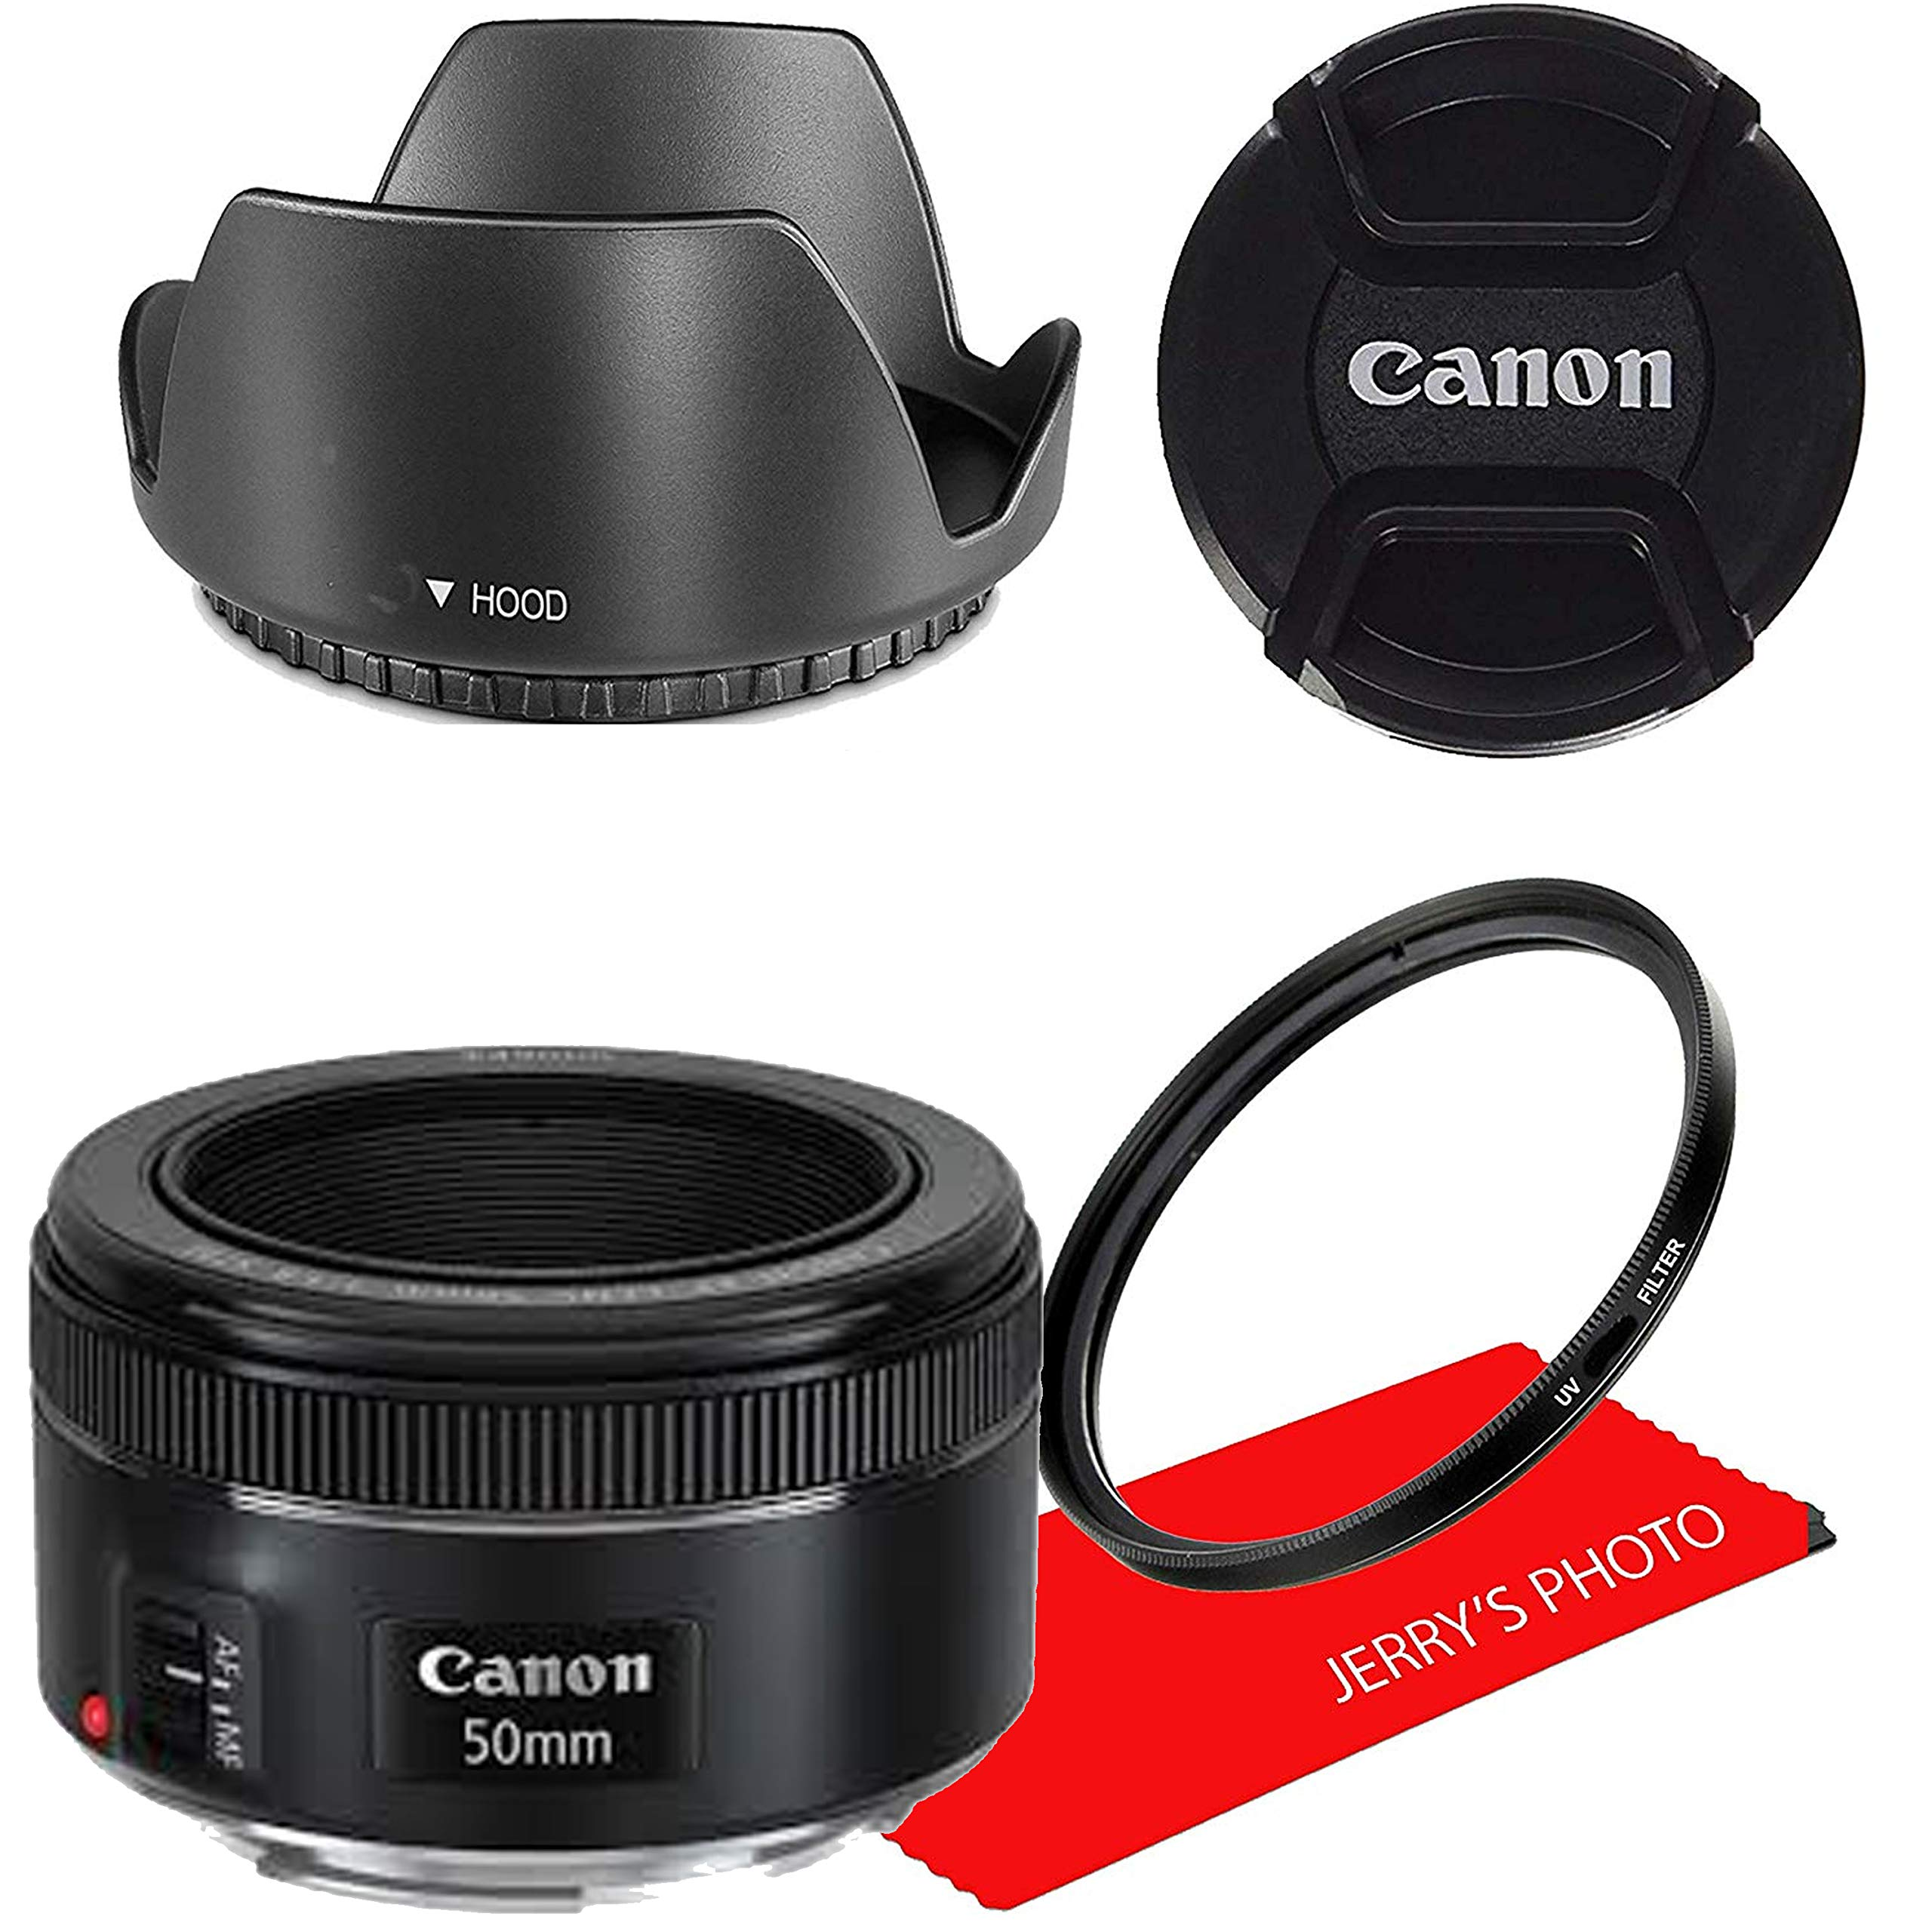 CanonEF 50mm f/1.8 STM Lens by Canon